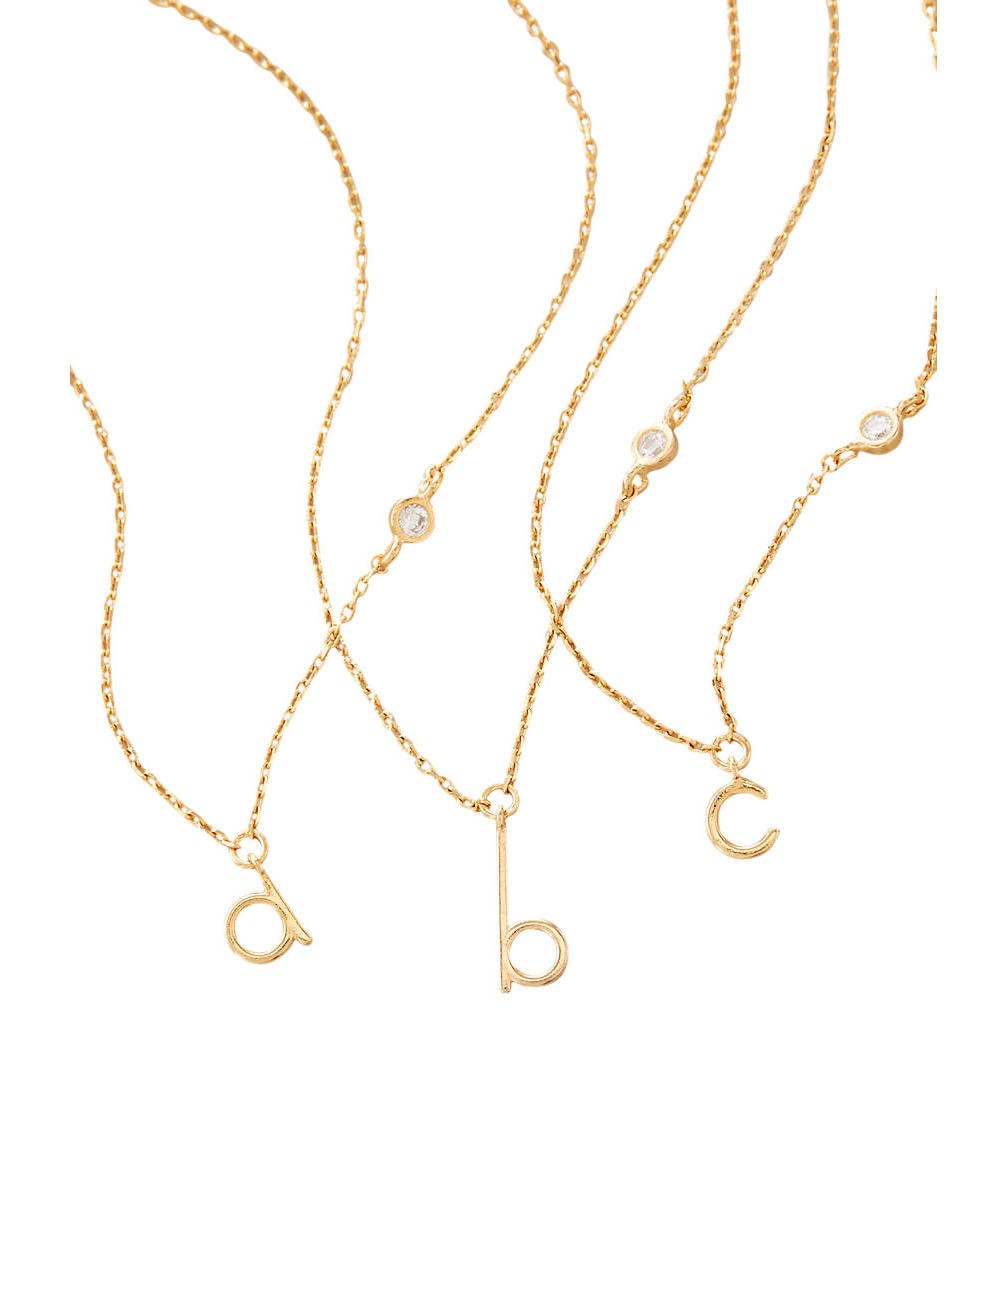 Anthropologie Mini Monogram Pendant Necklace